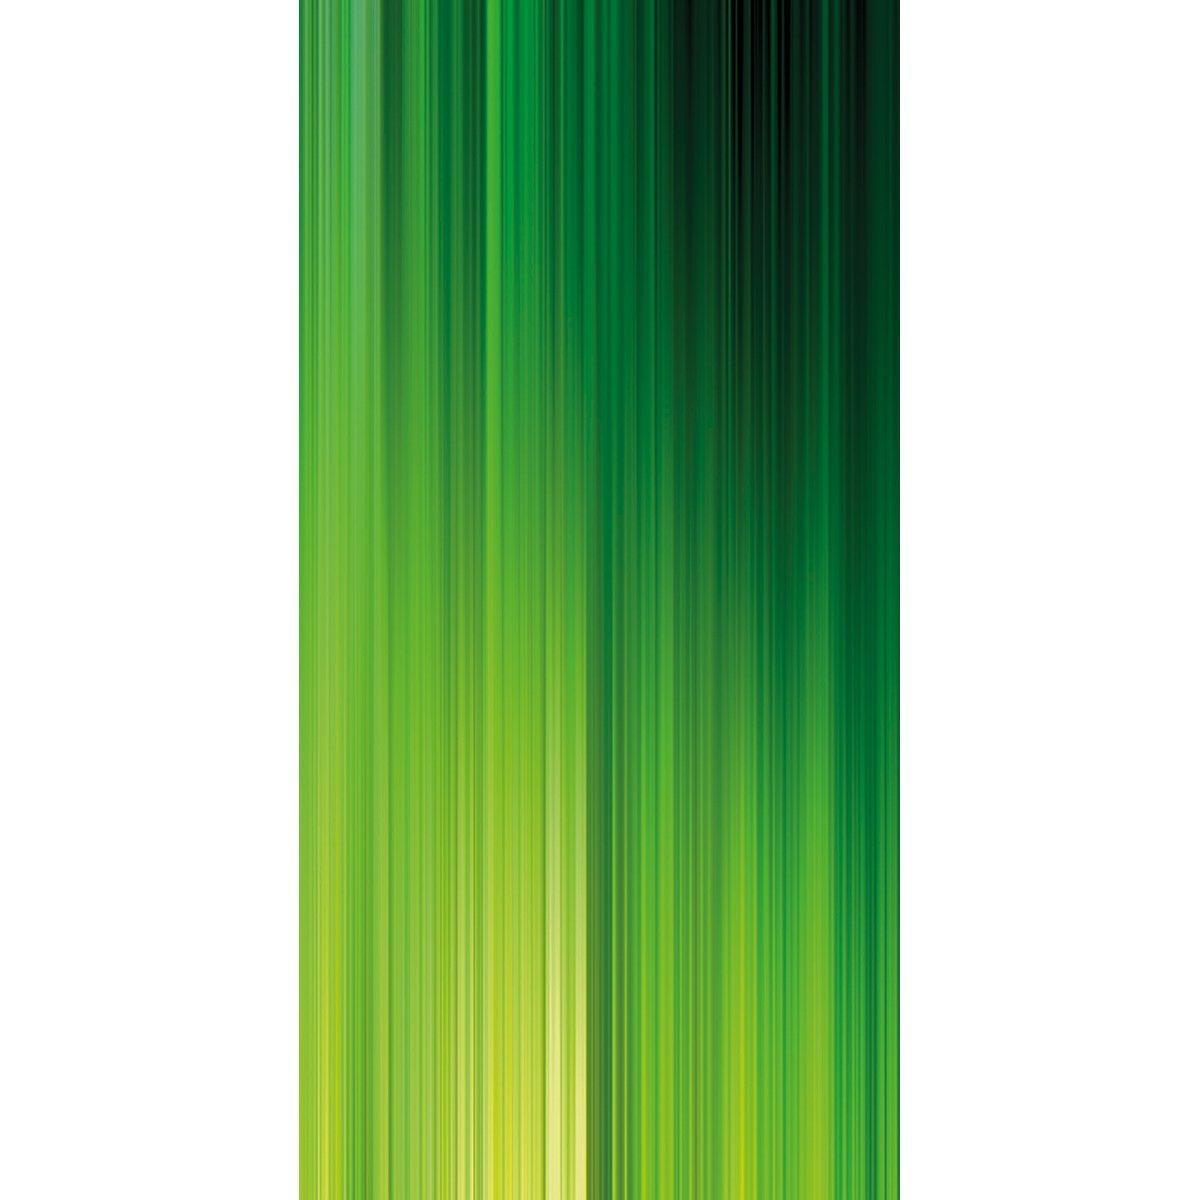 Wall Acoustics Panel 6 Muffle Abstract Mural - Kinetic Green Panel 6